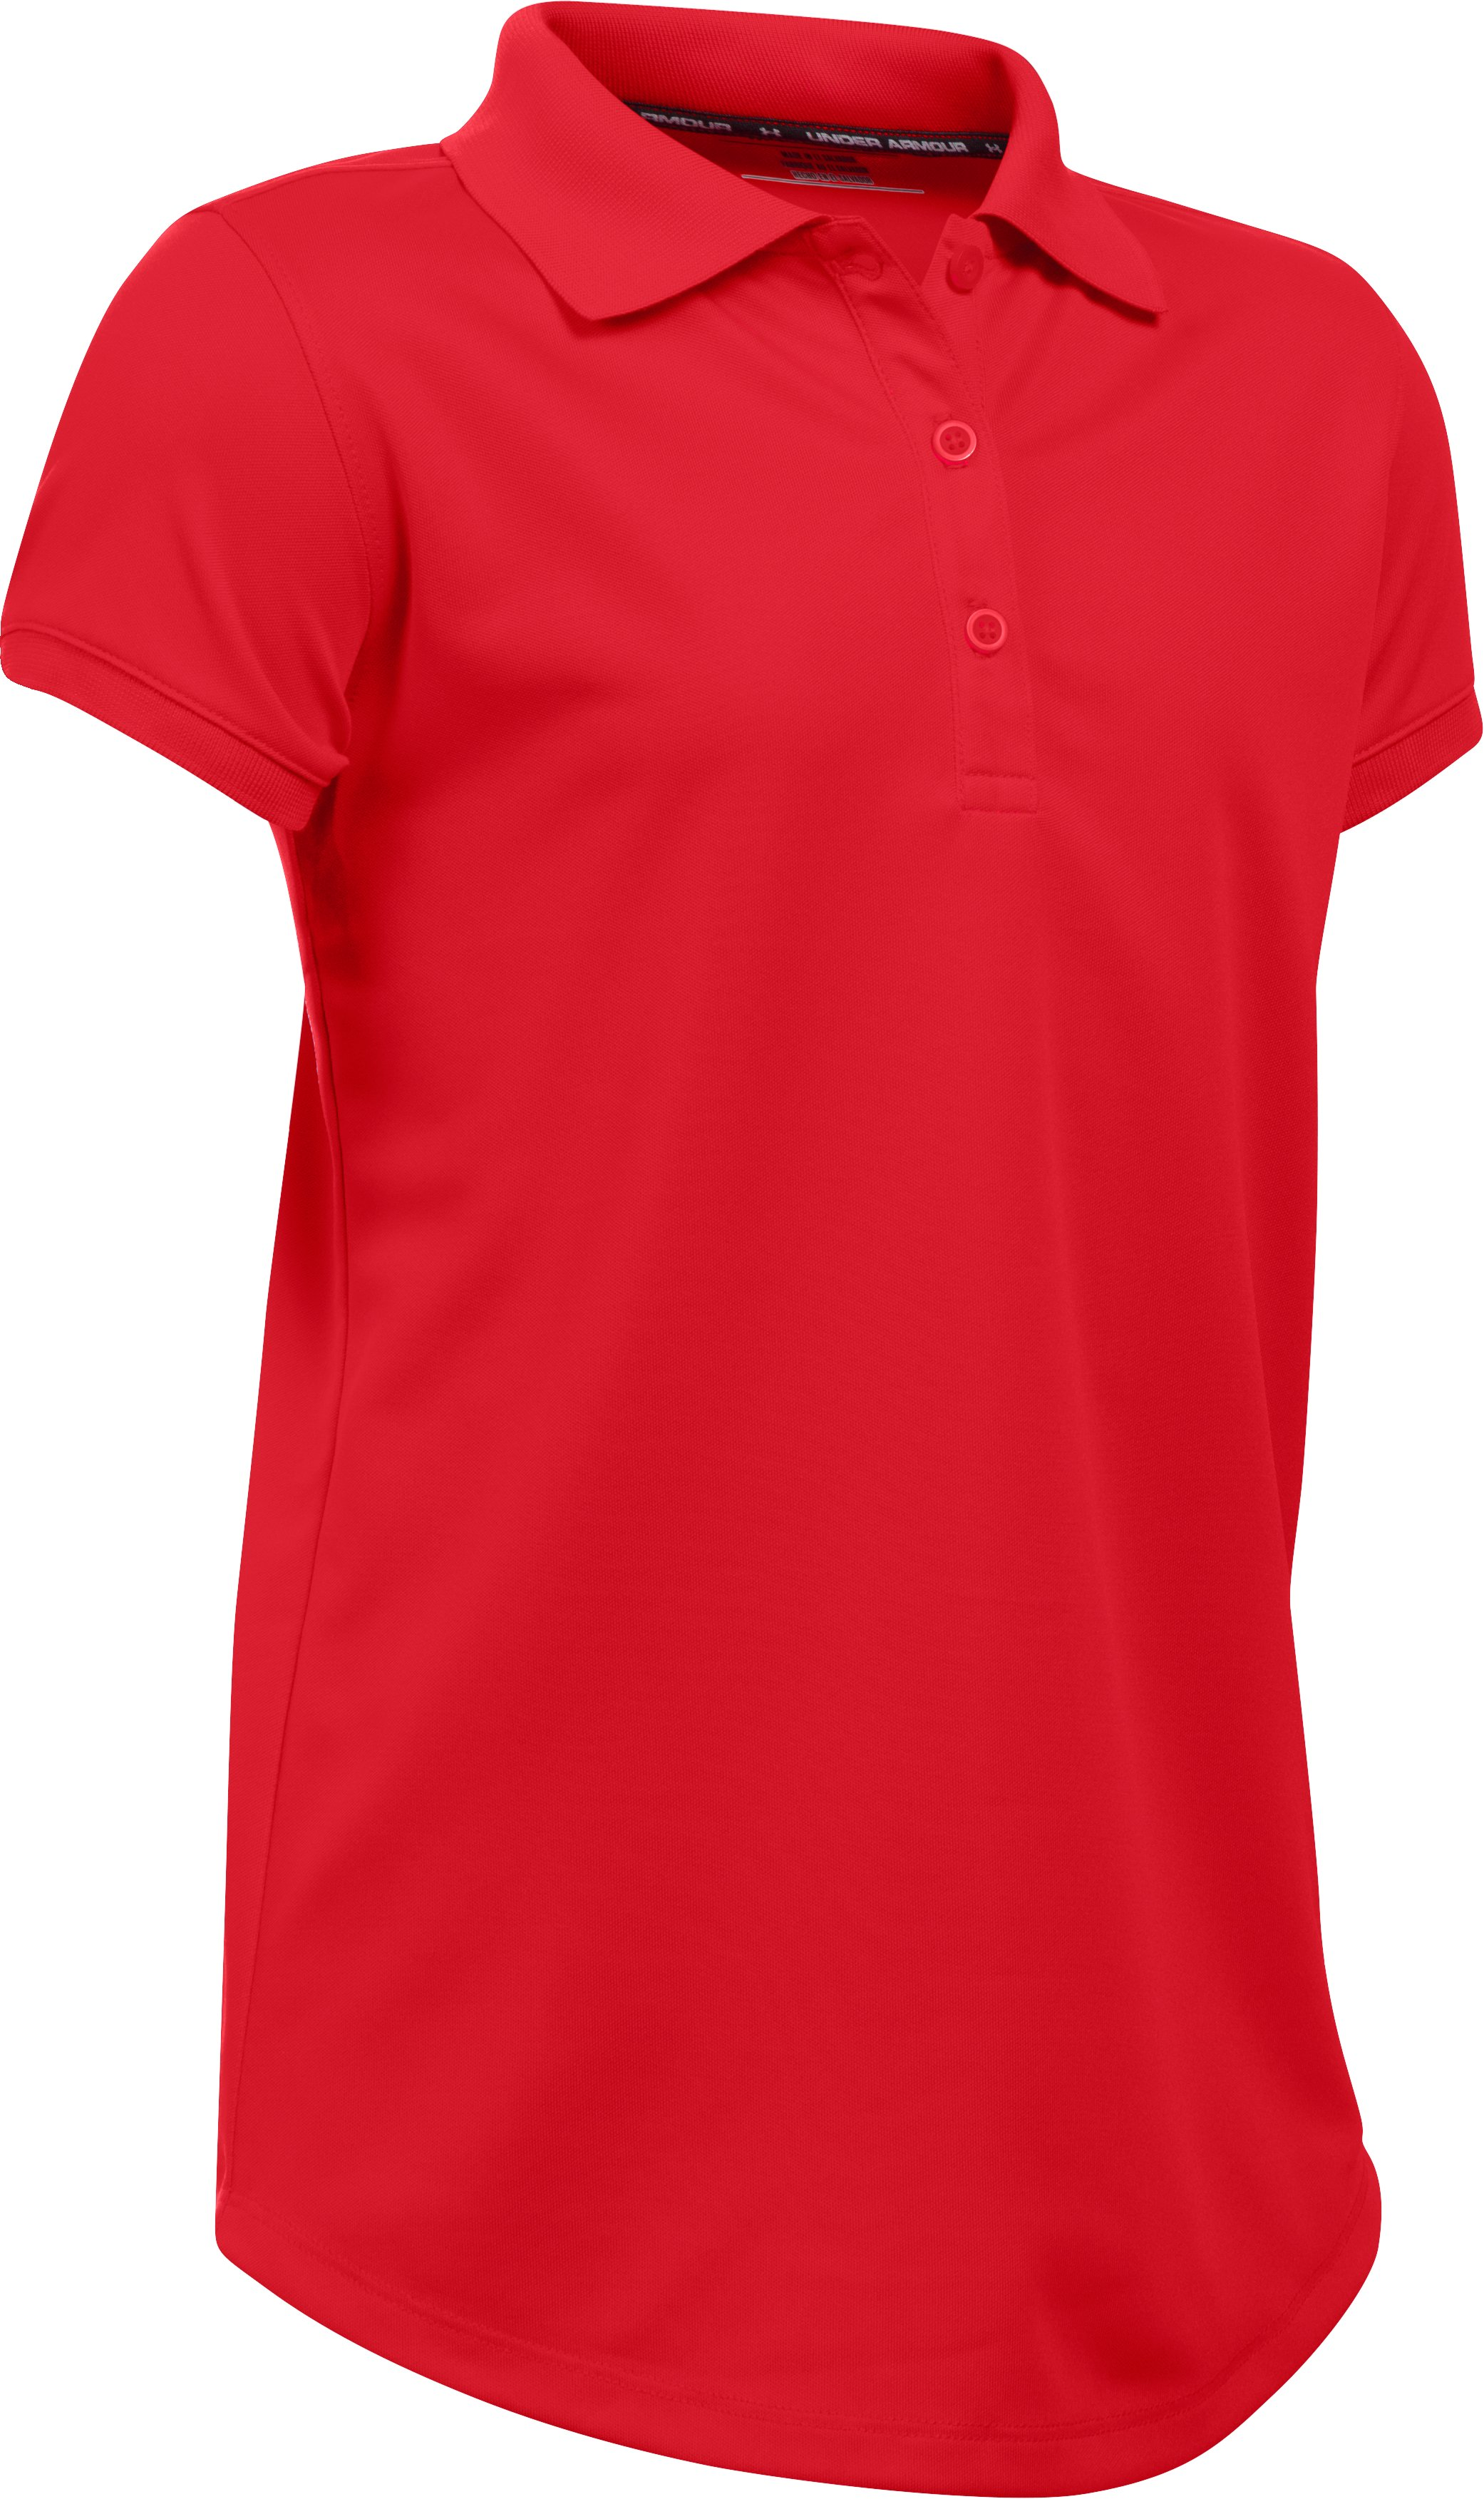 Girls' UA Uniform Short Sleeve Polo – Pre-School, Red,